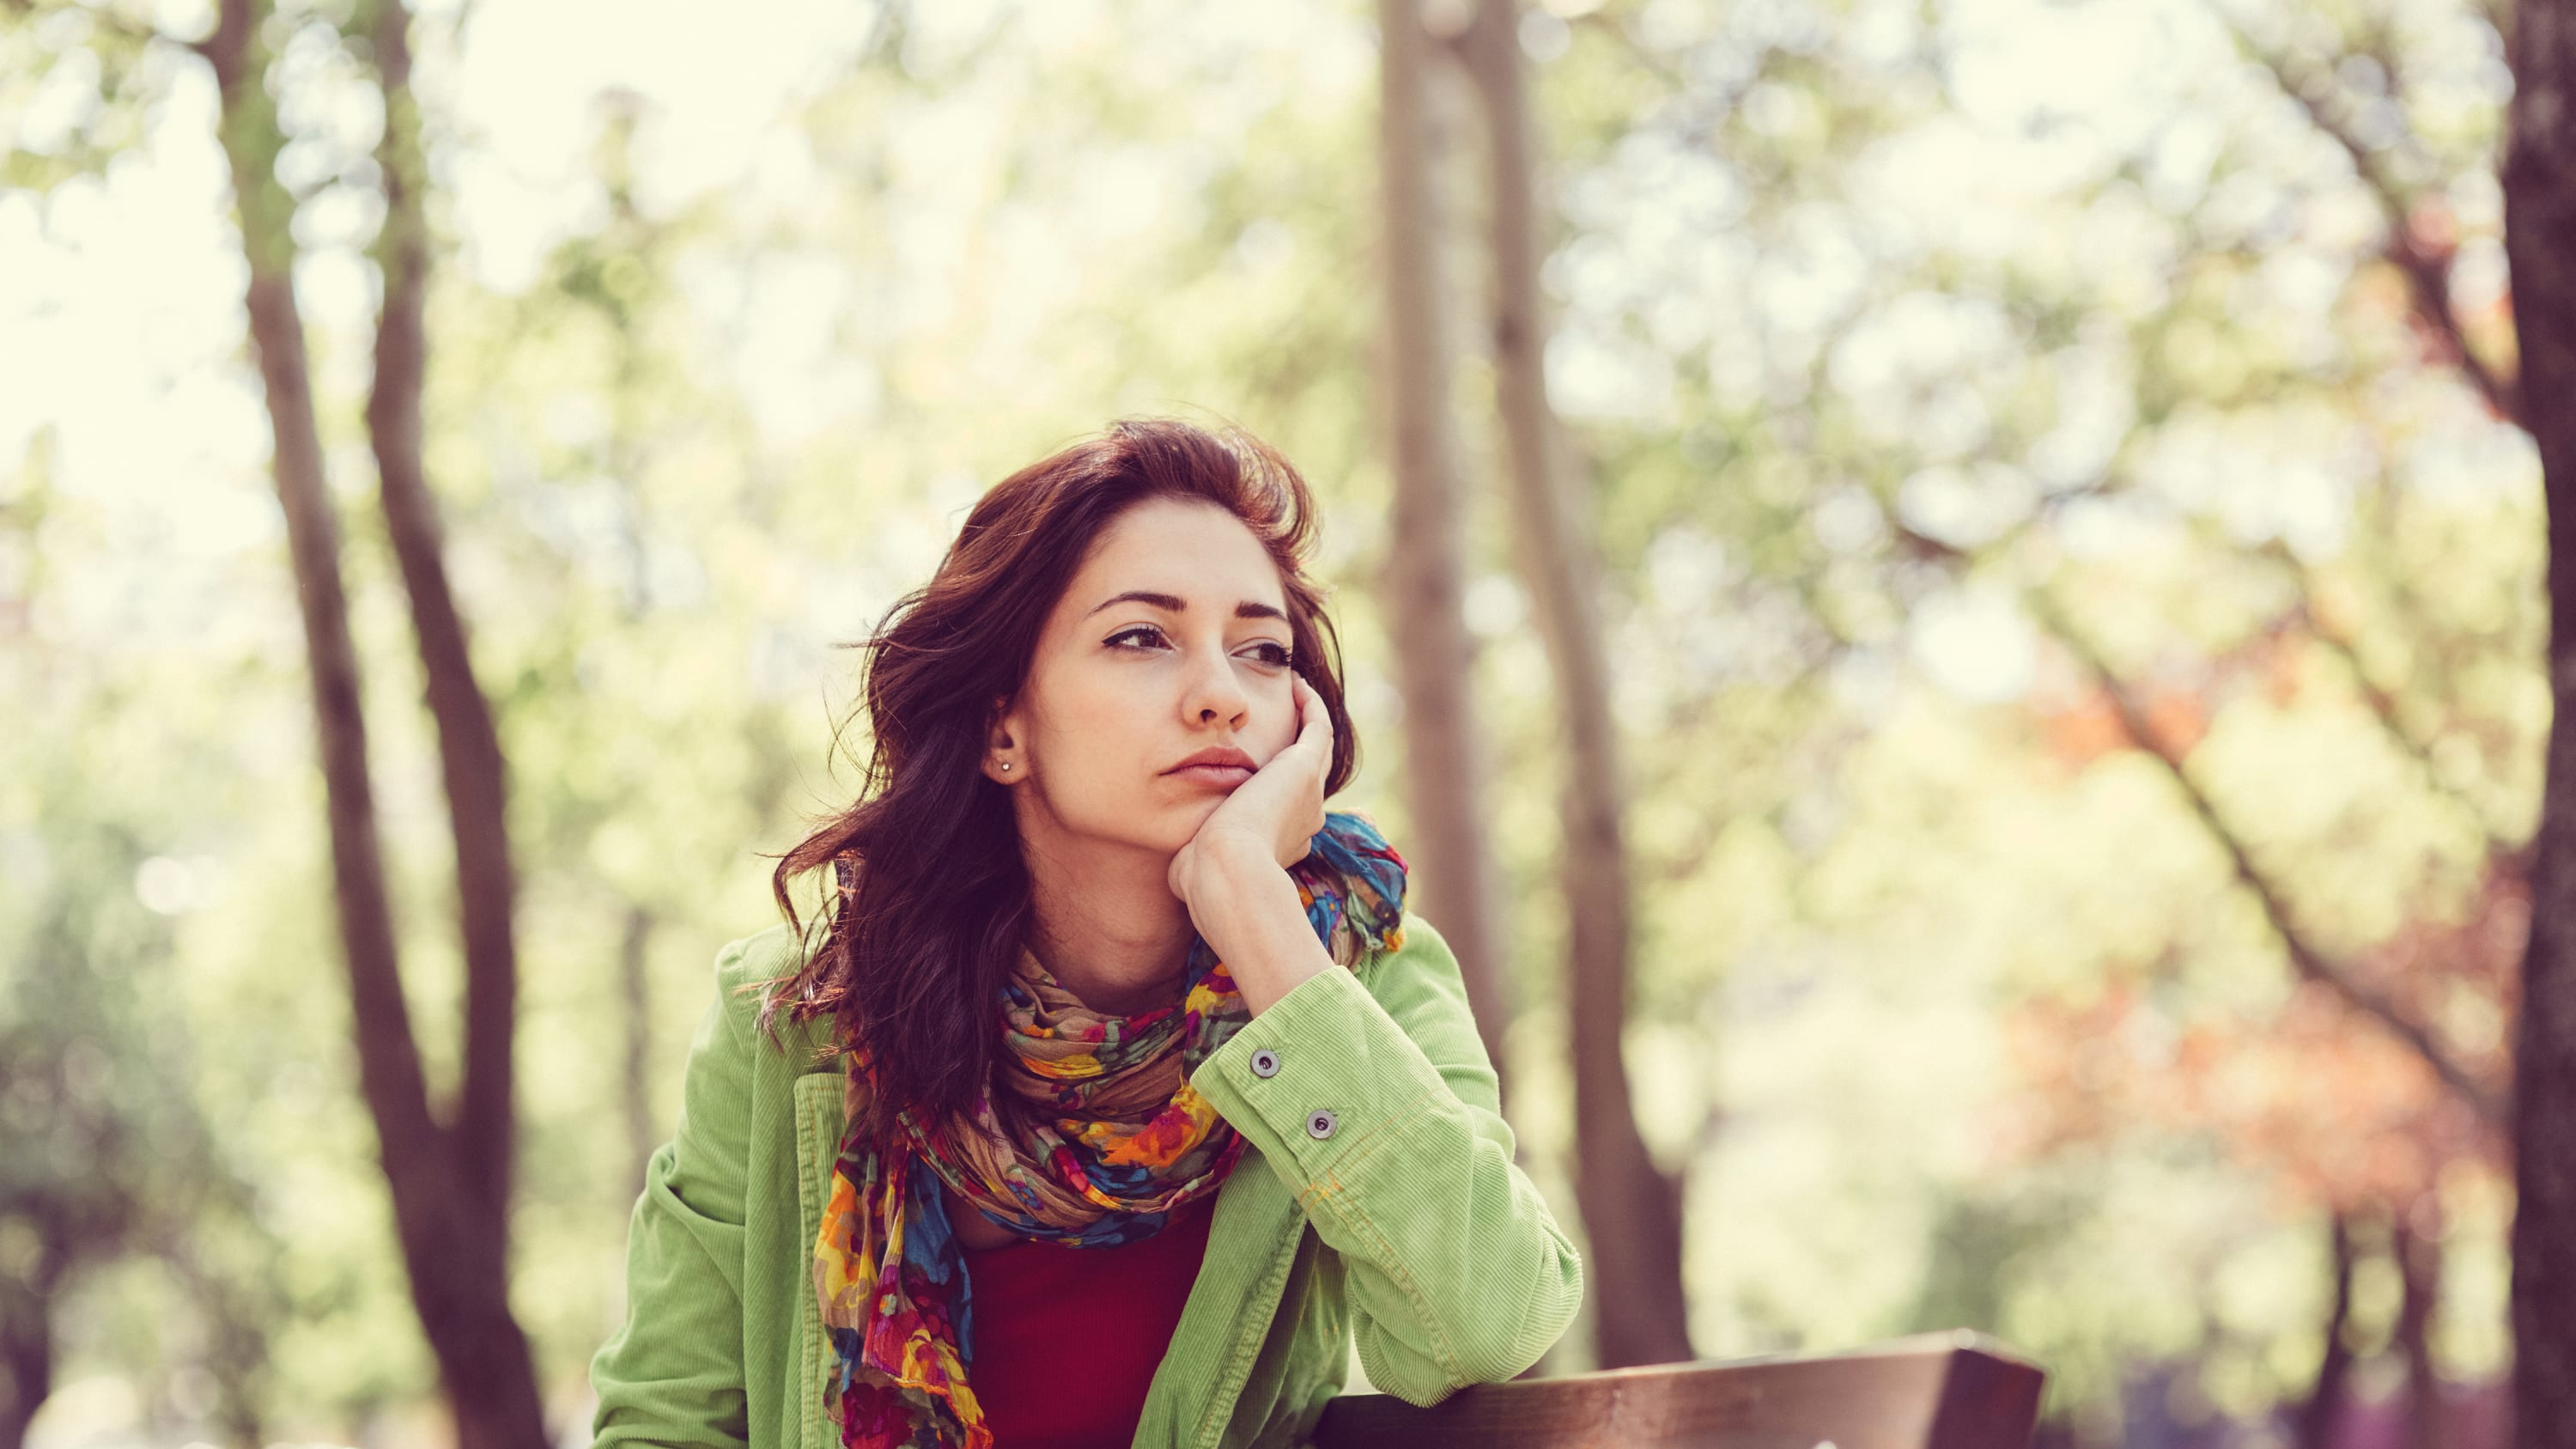 Thoughtful woman, possibly worried about HPV-related cancer